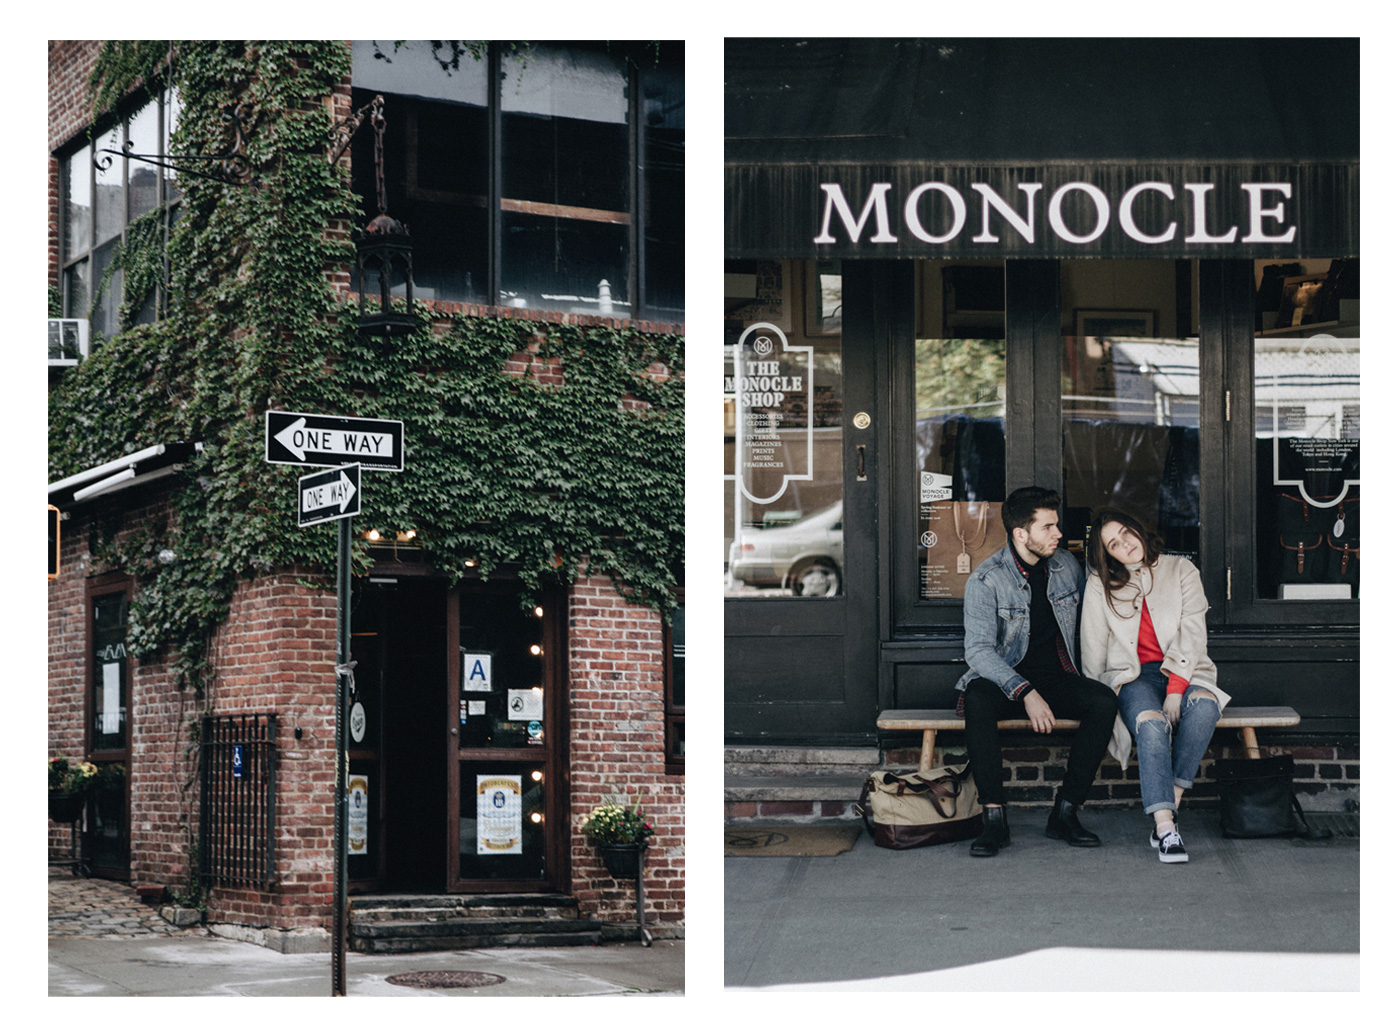 Monocle shop in the west village of New York city